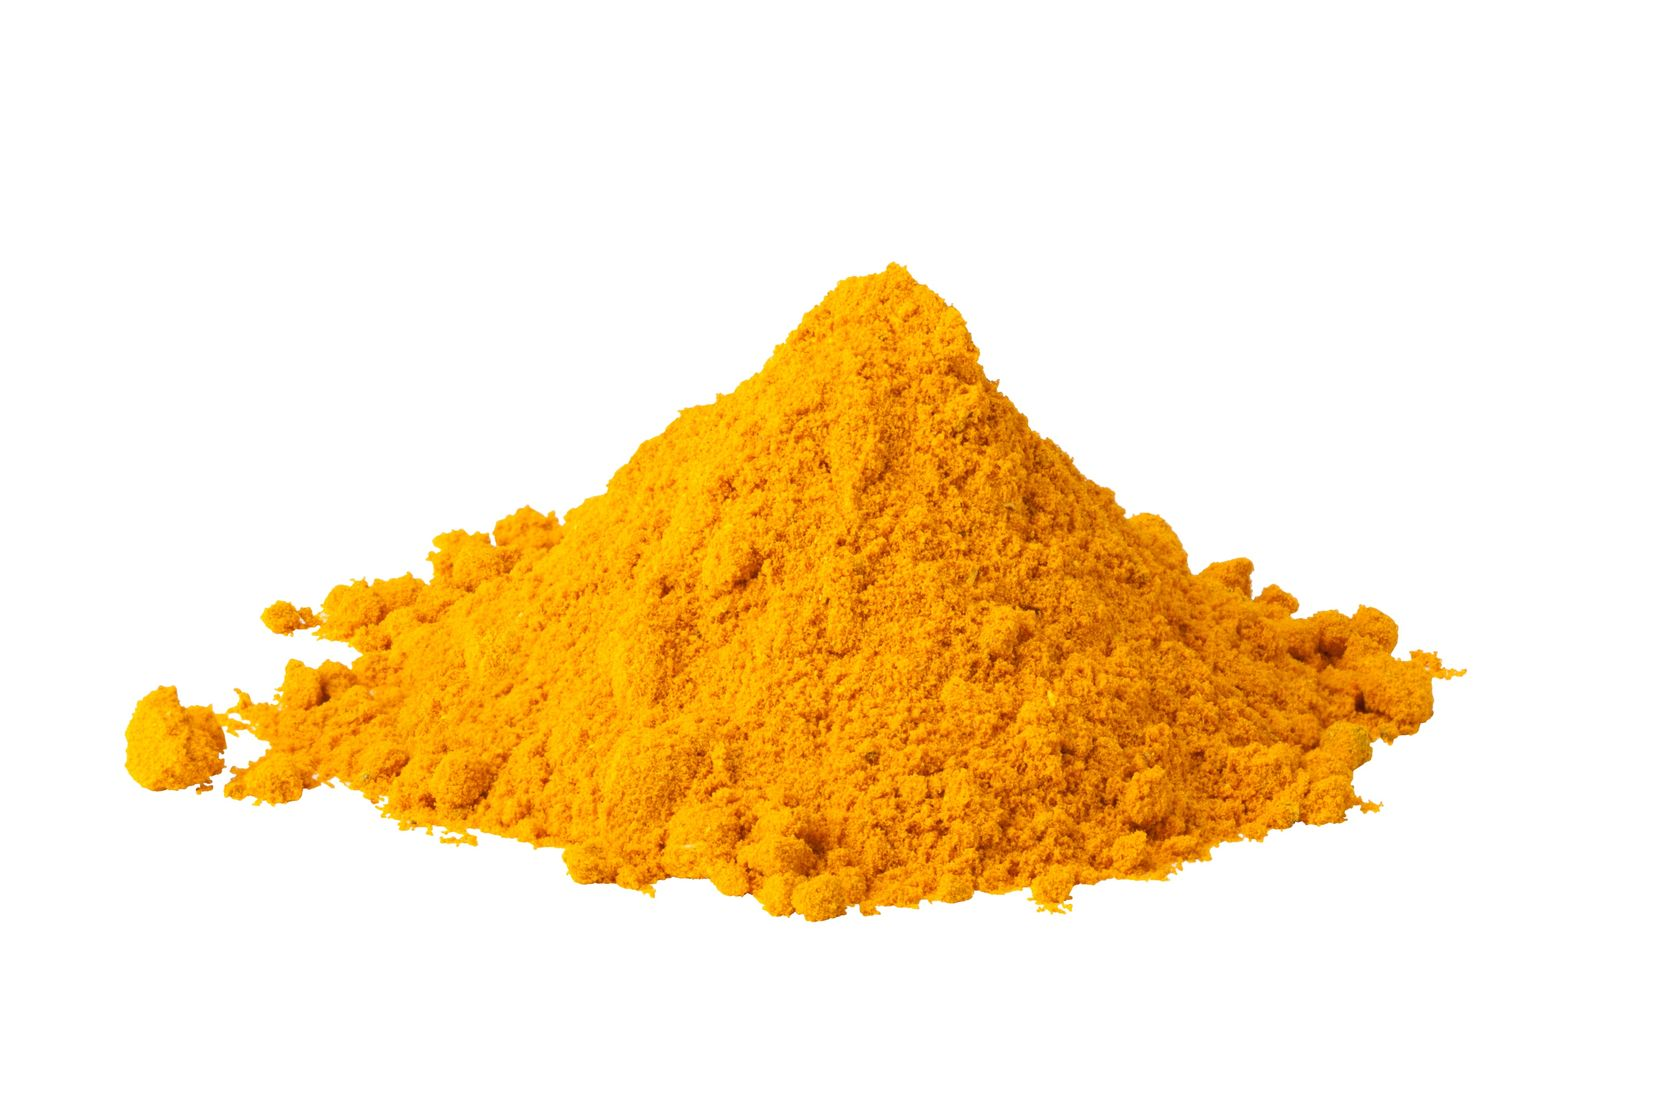 curcumin improves negative symptoms of schizophrenia